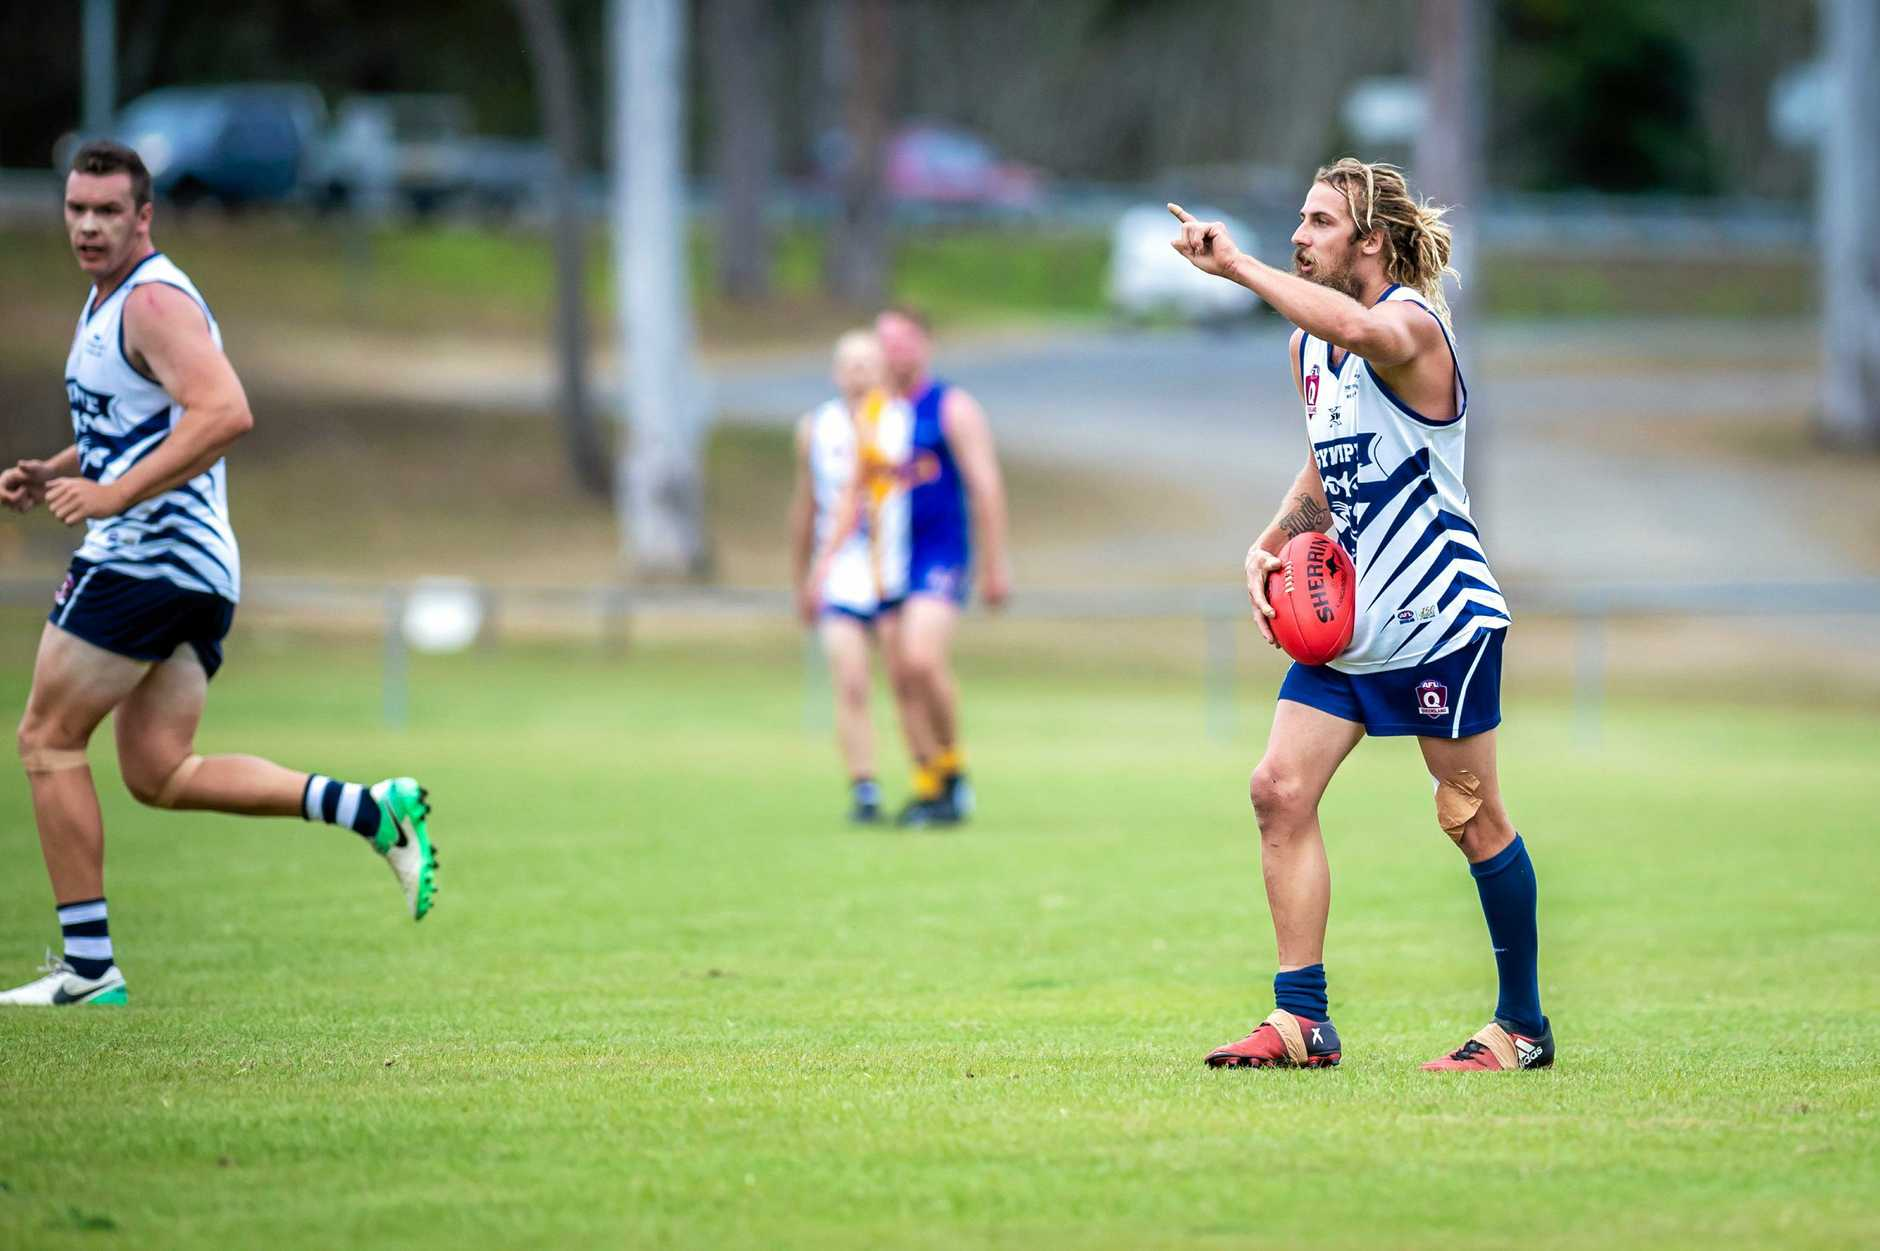 AFL - Gympie Cats vs Across the Waves Bundaberg FC - Lanze Magin Cats